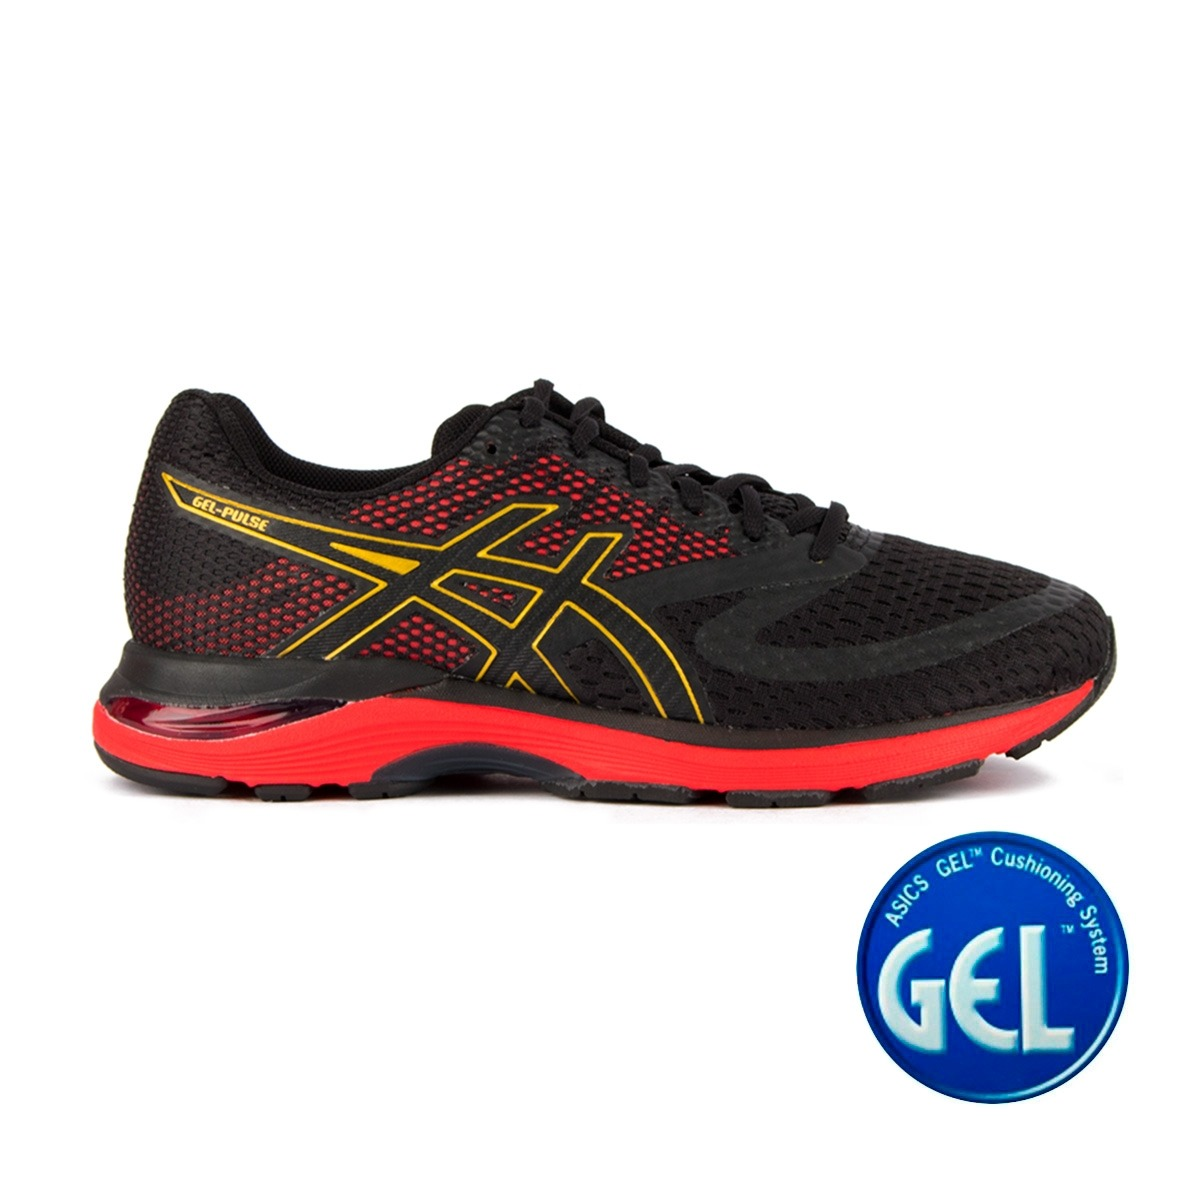 Asics Gel Pulse 10 Innovation In Motion Black Rich Gold Hombre